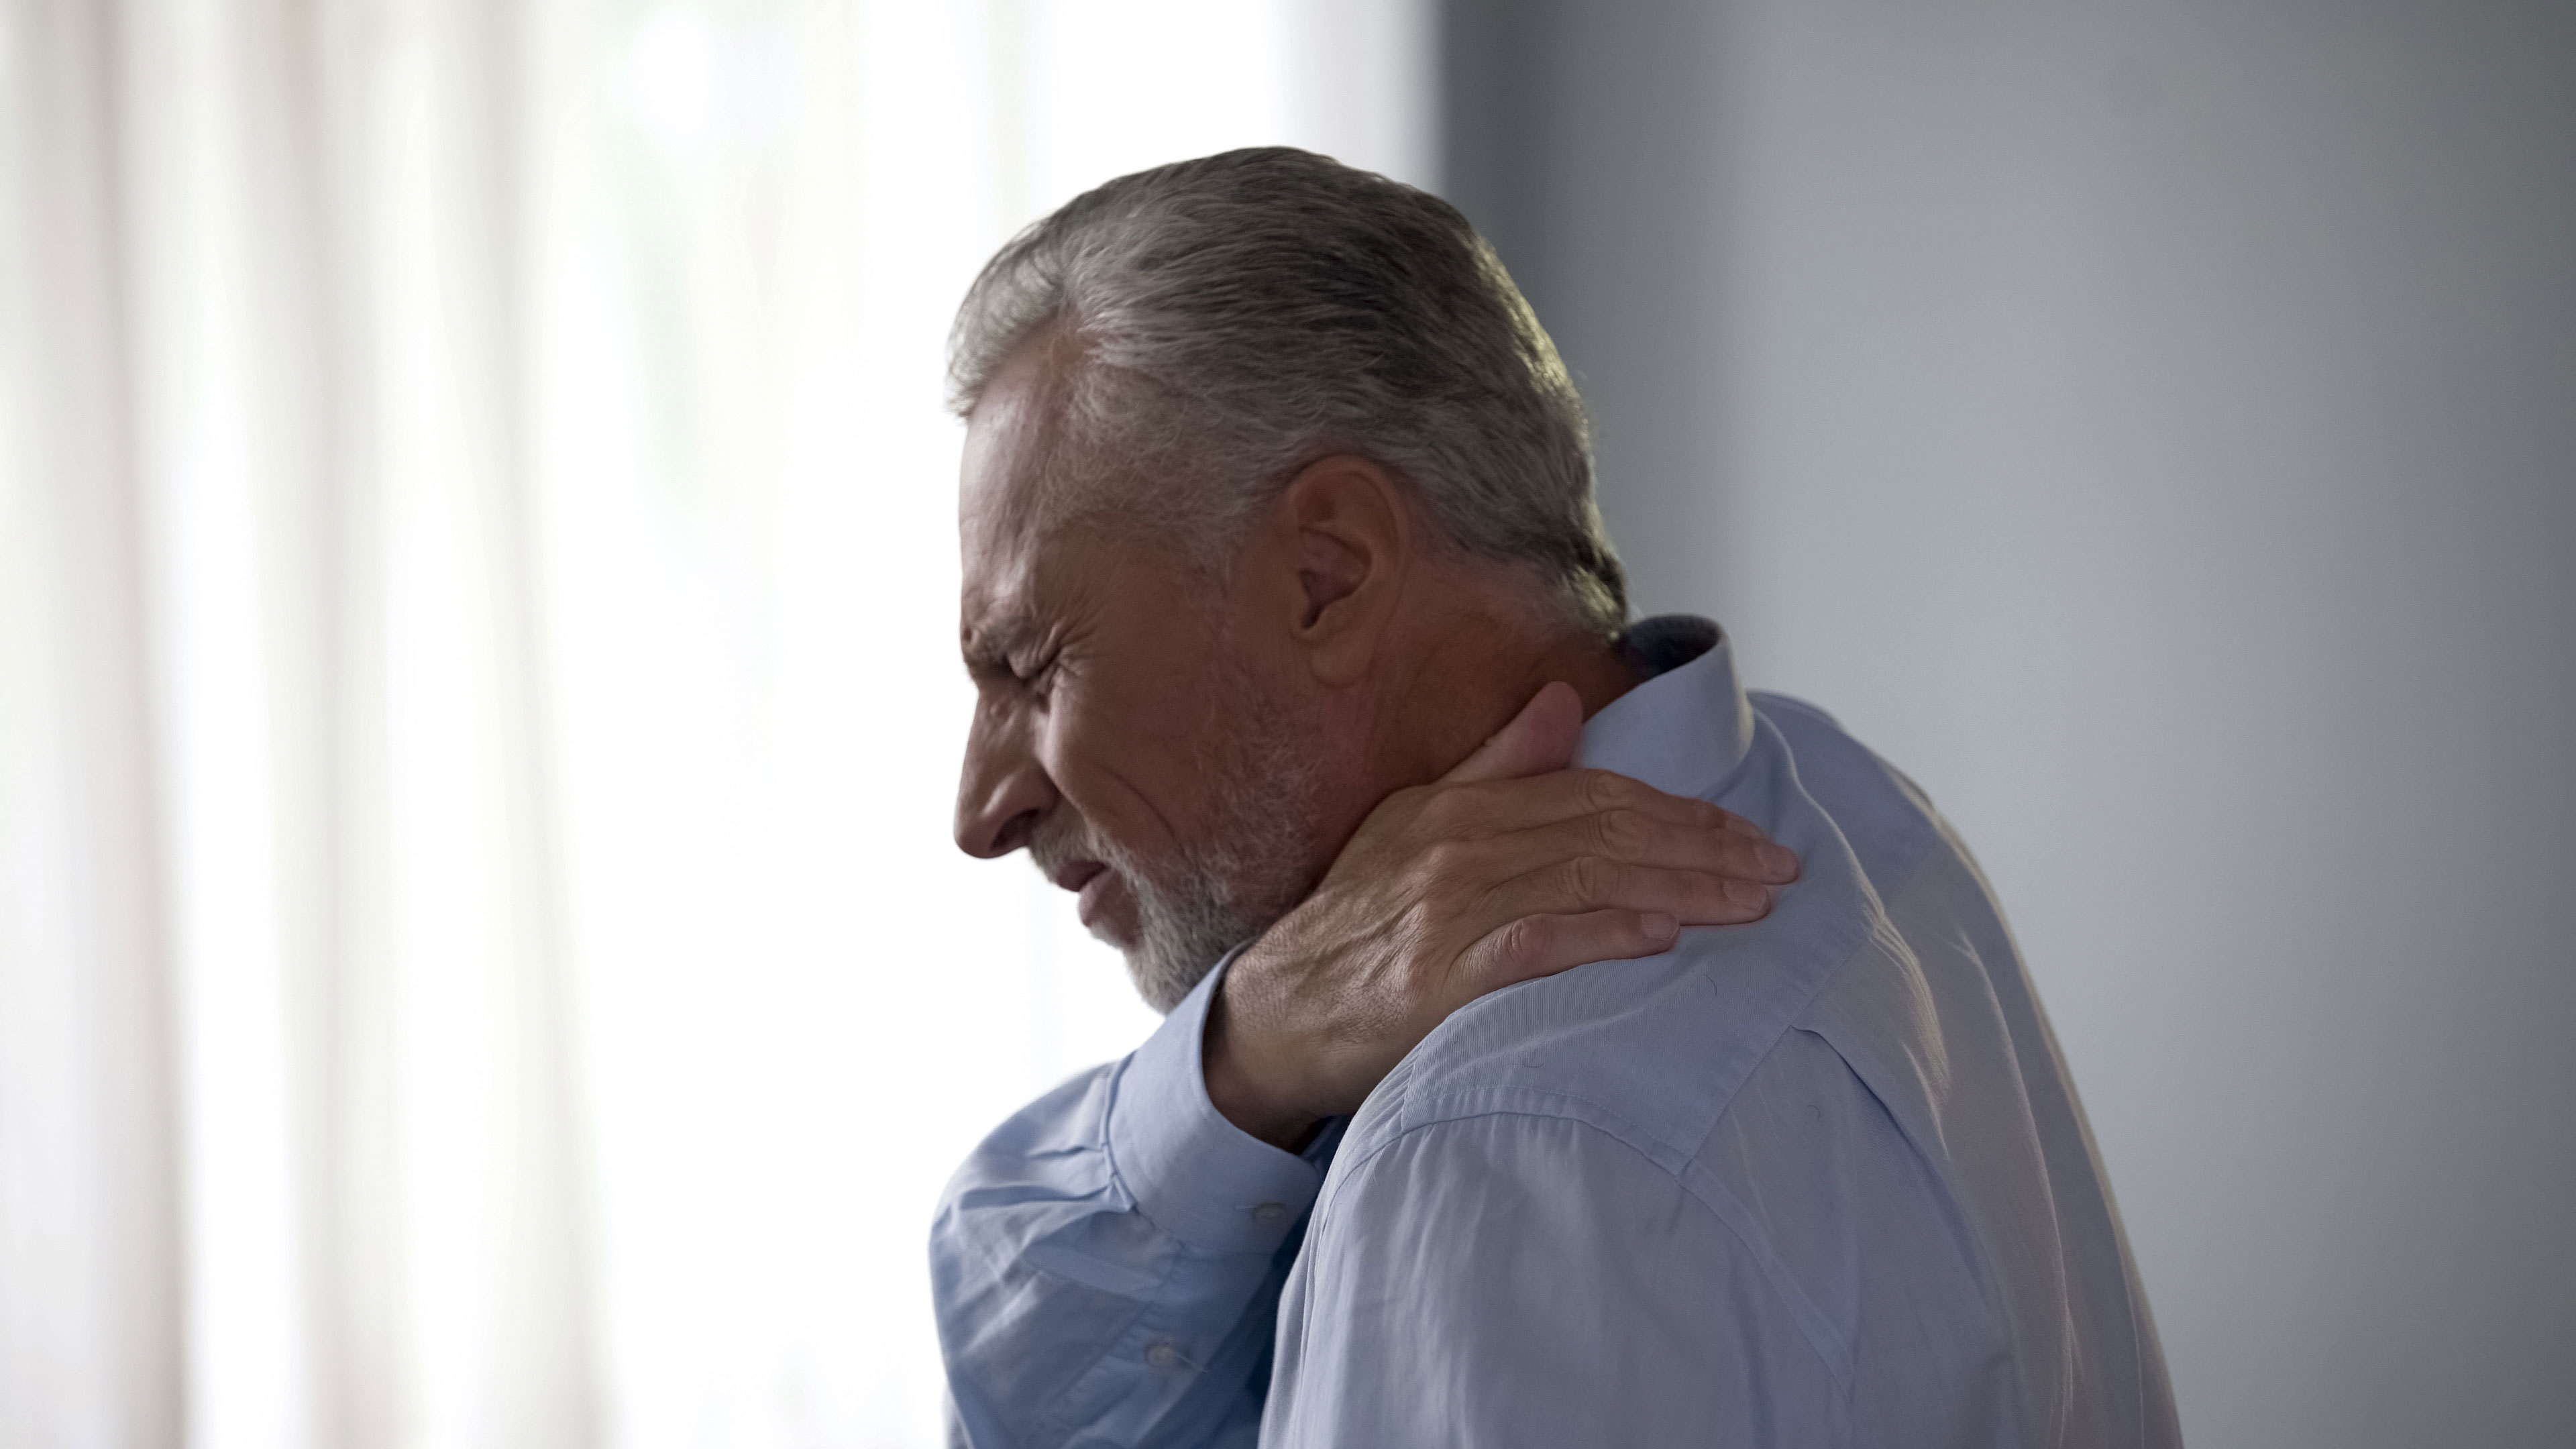 Neck pain treatment without surgery or pills